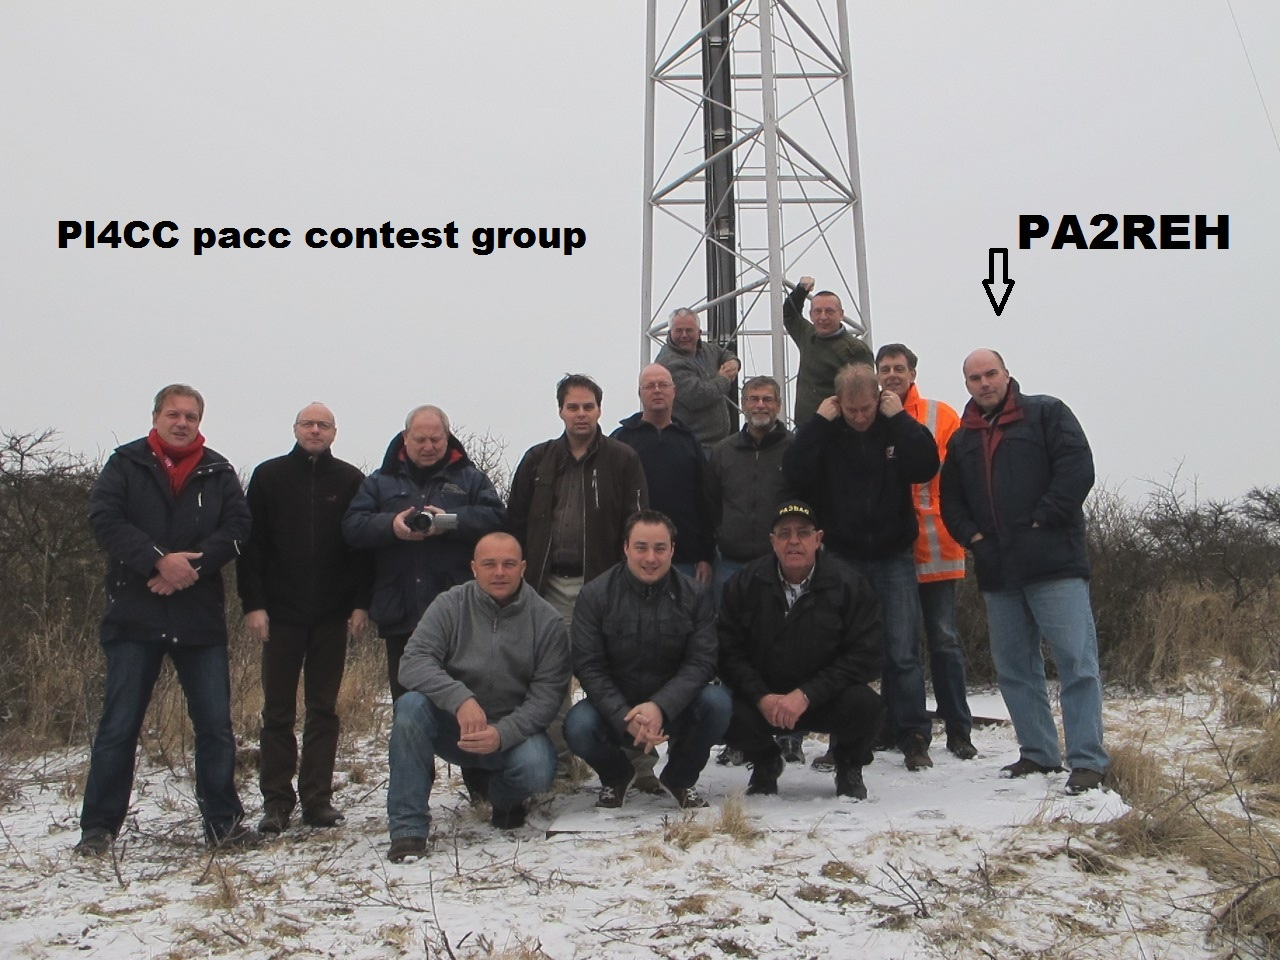 QSL image for PA2REH